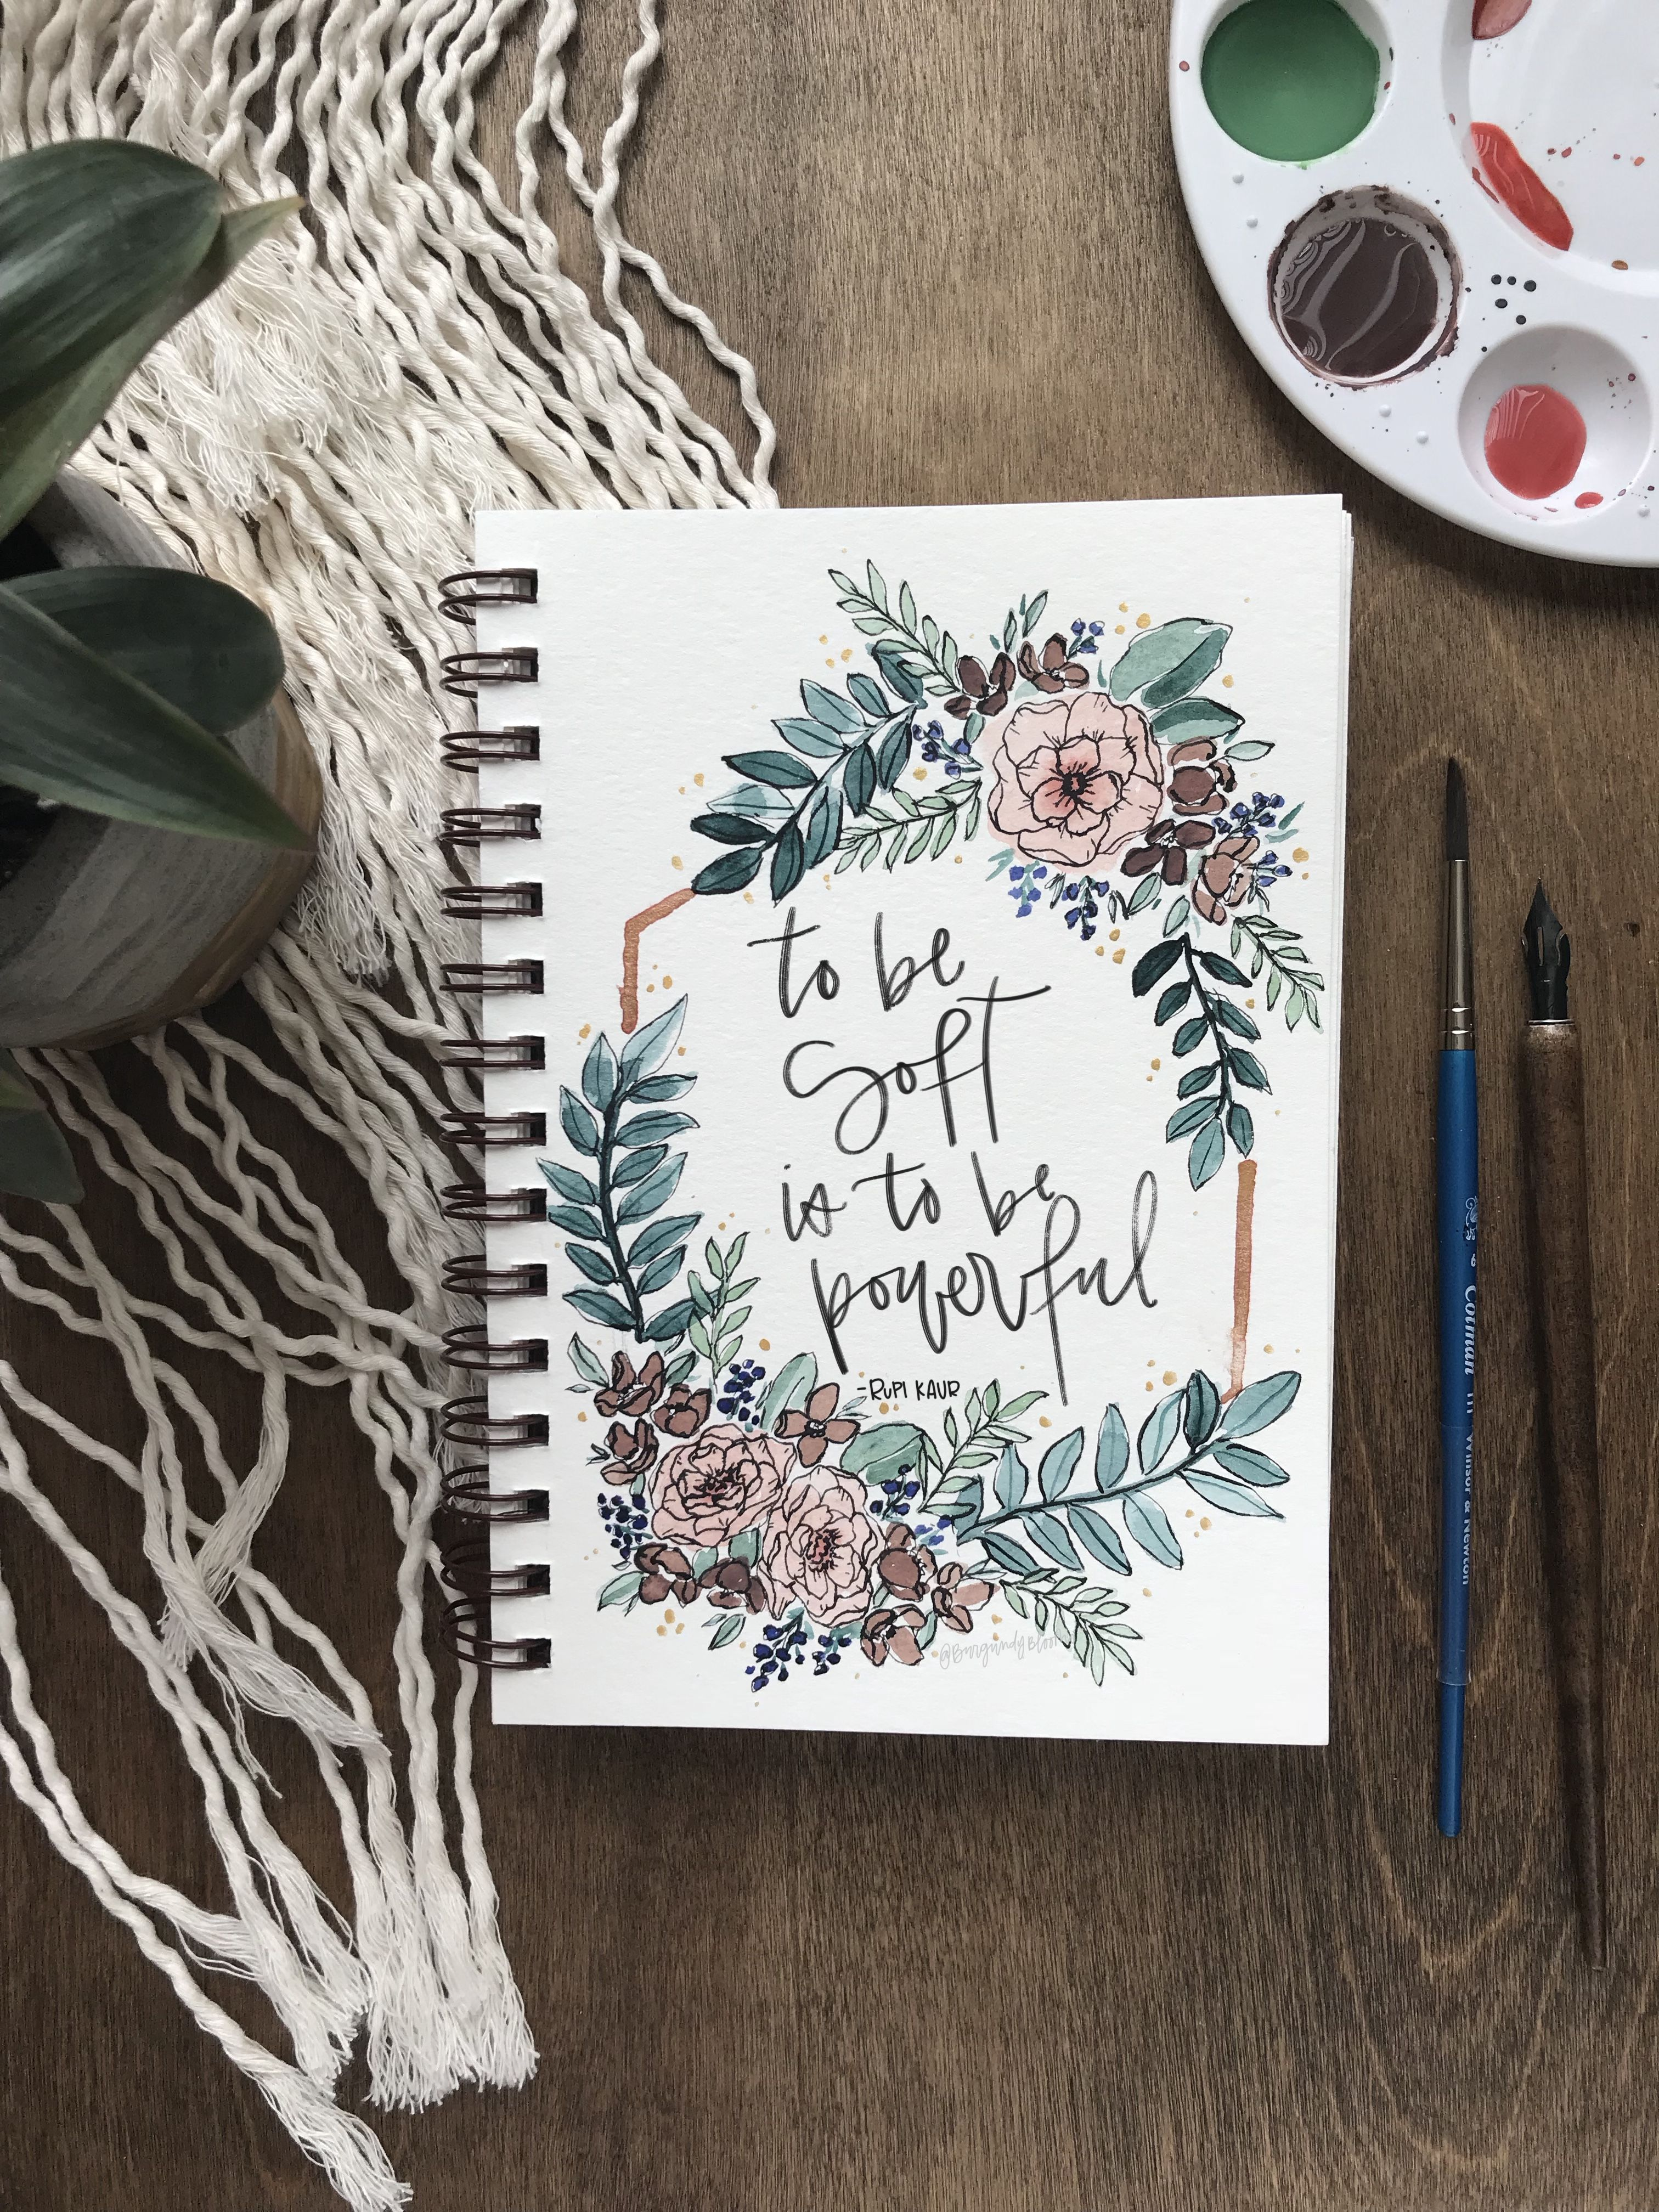 Watercolor Florals With Rupi Kaur Poetry Instagram